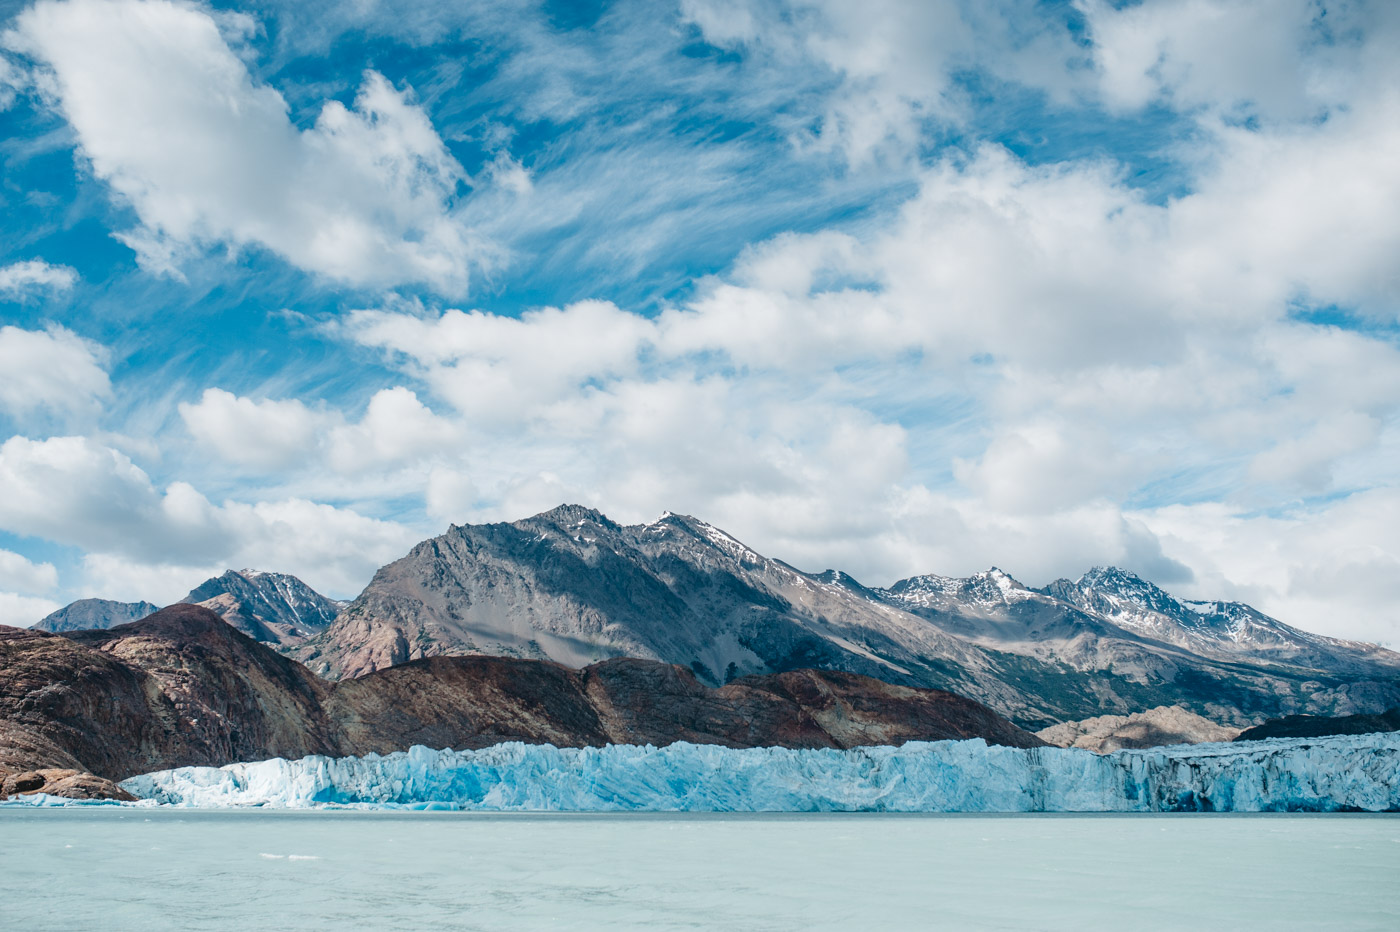 View on the Viedma Glacier from the boat